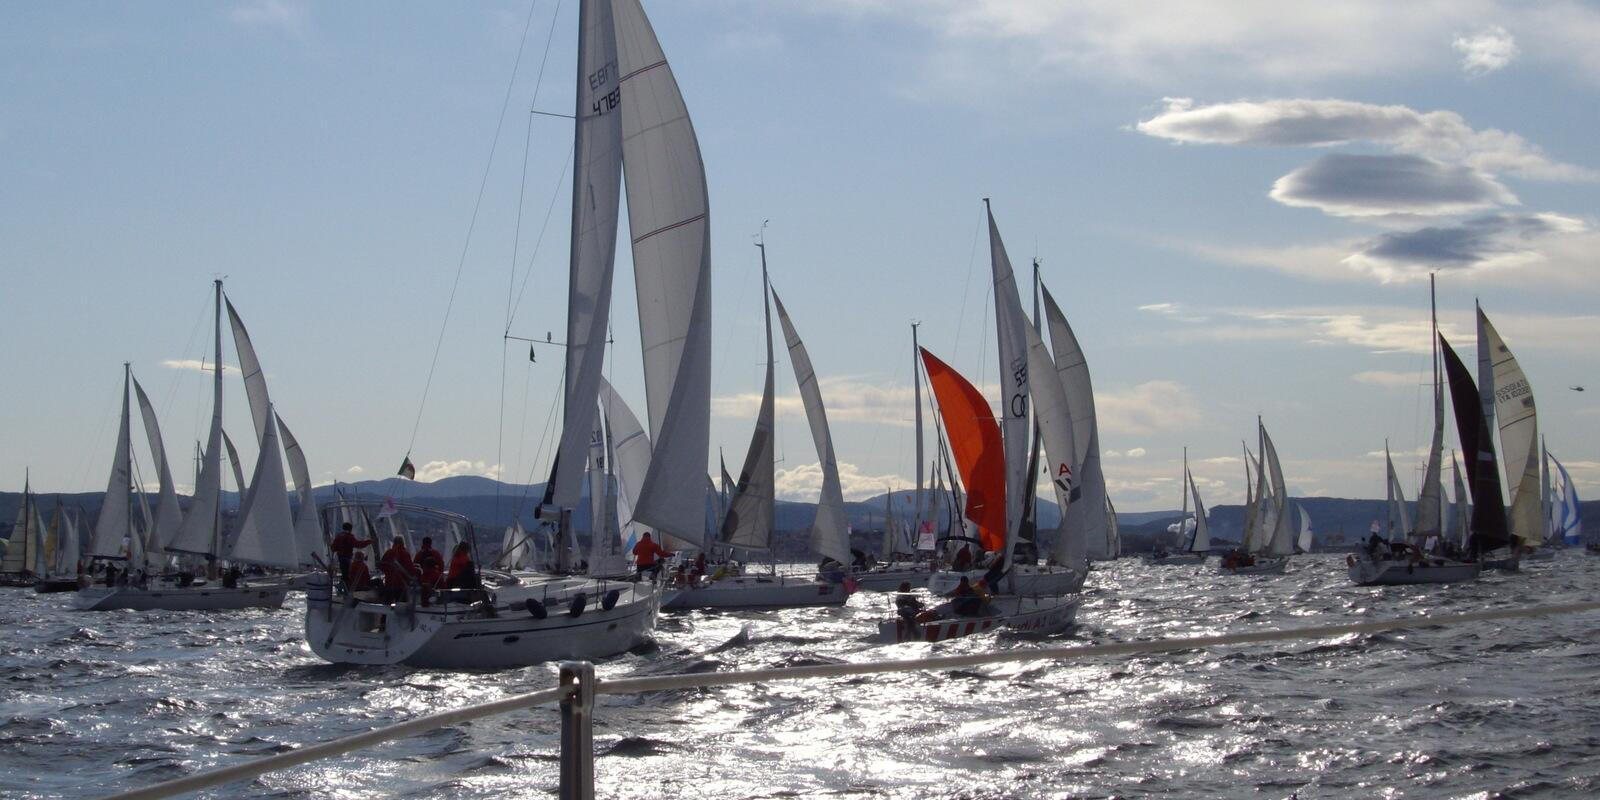 The Barcolana of Trieste, an emotion not to be missed .. !!